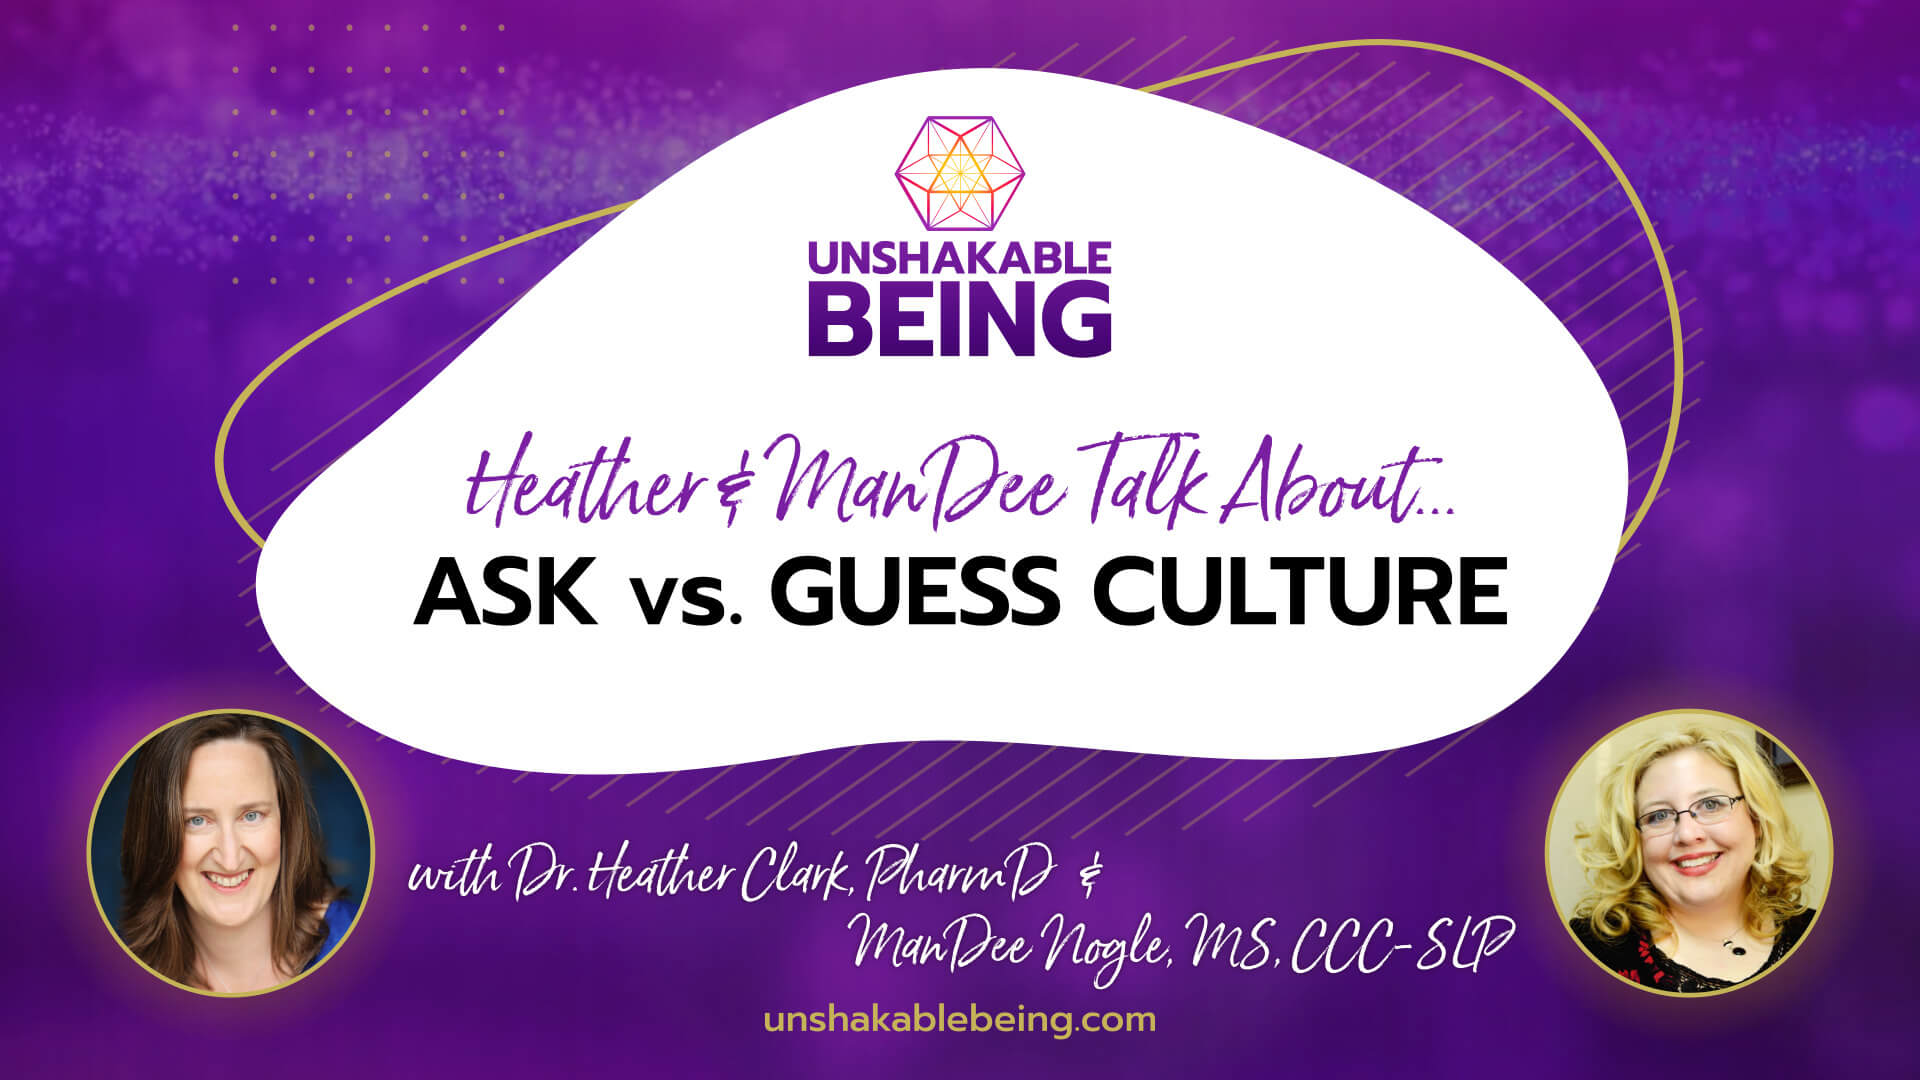 Ask vs. Guess Culture on Heather & ManDee Talk About...